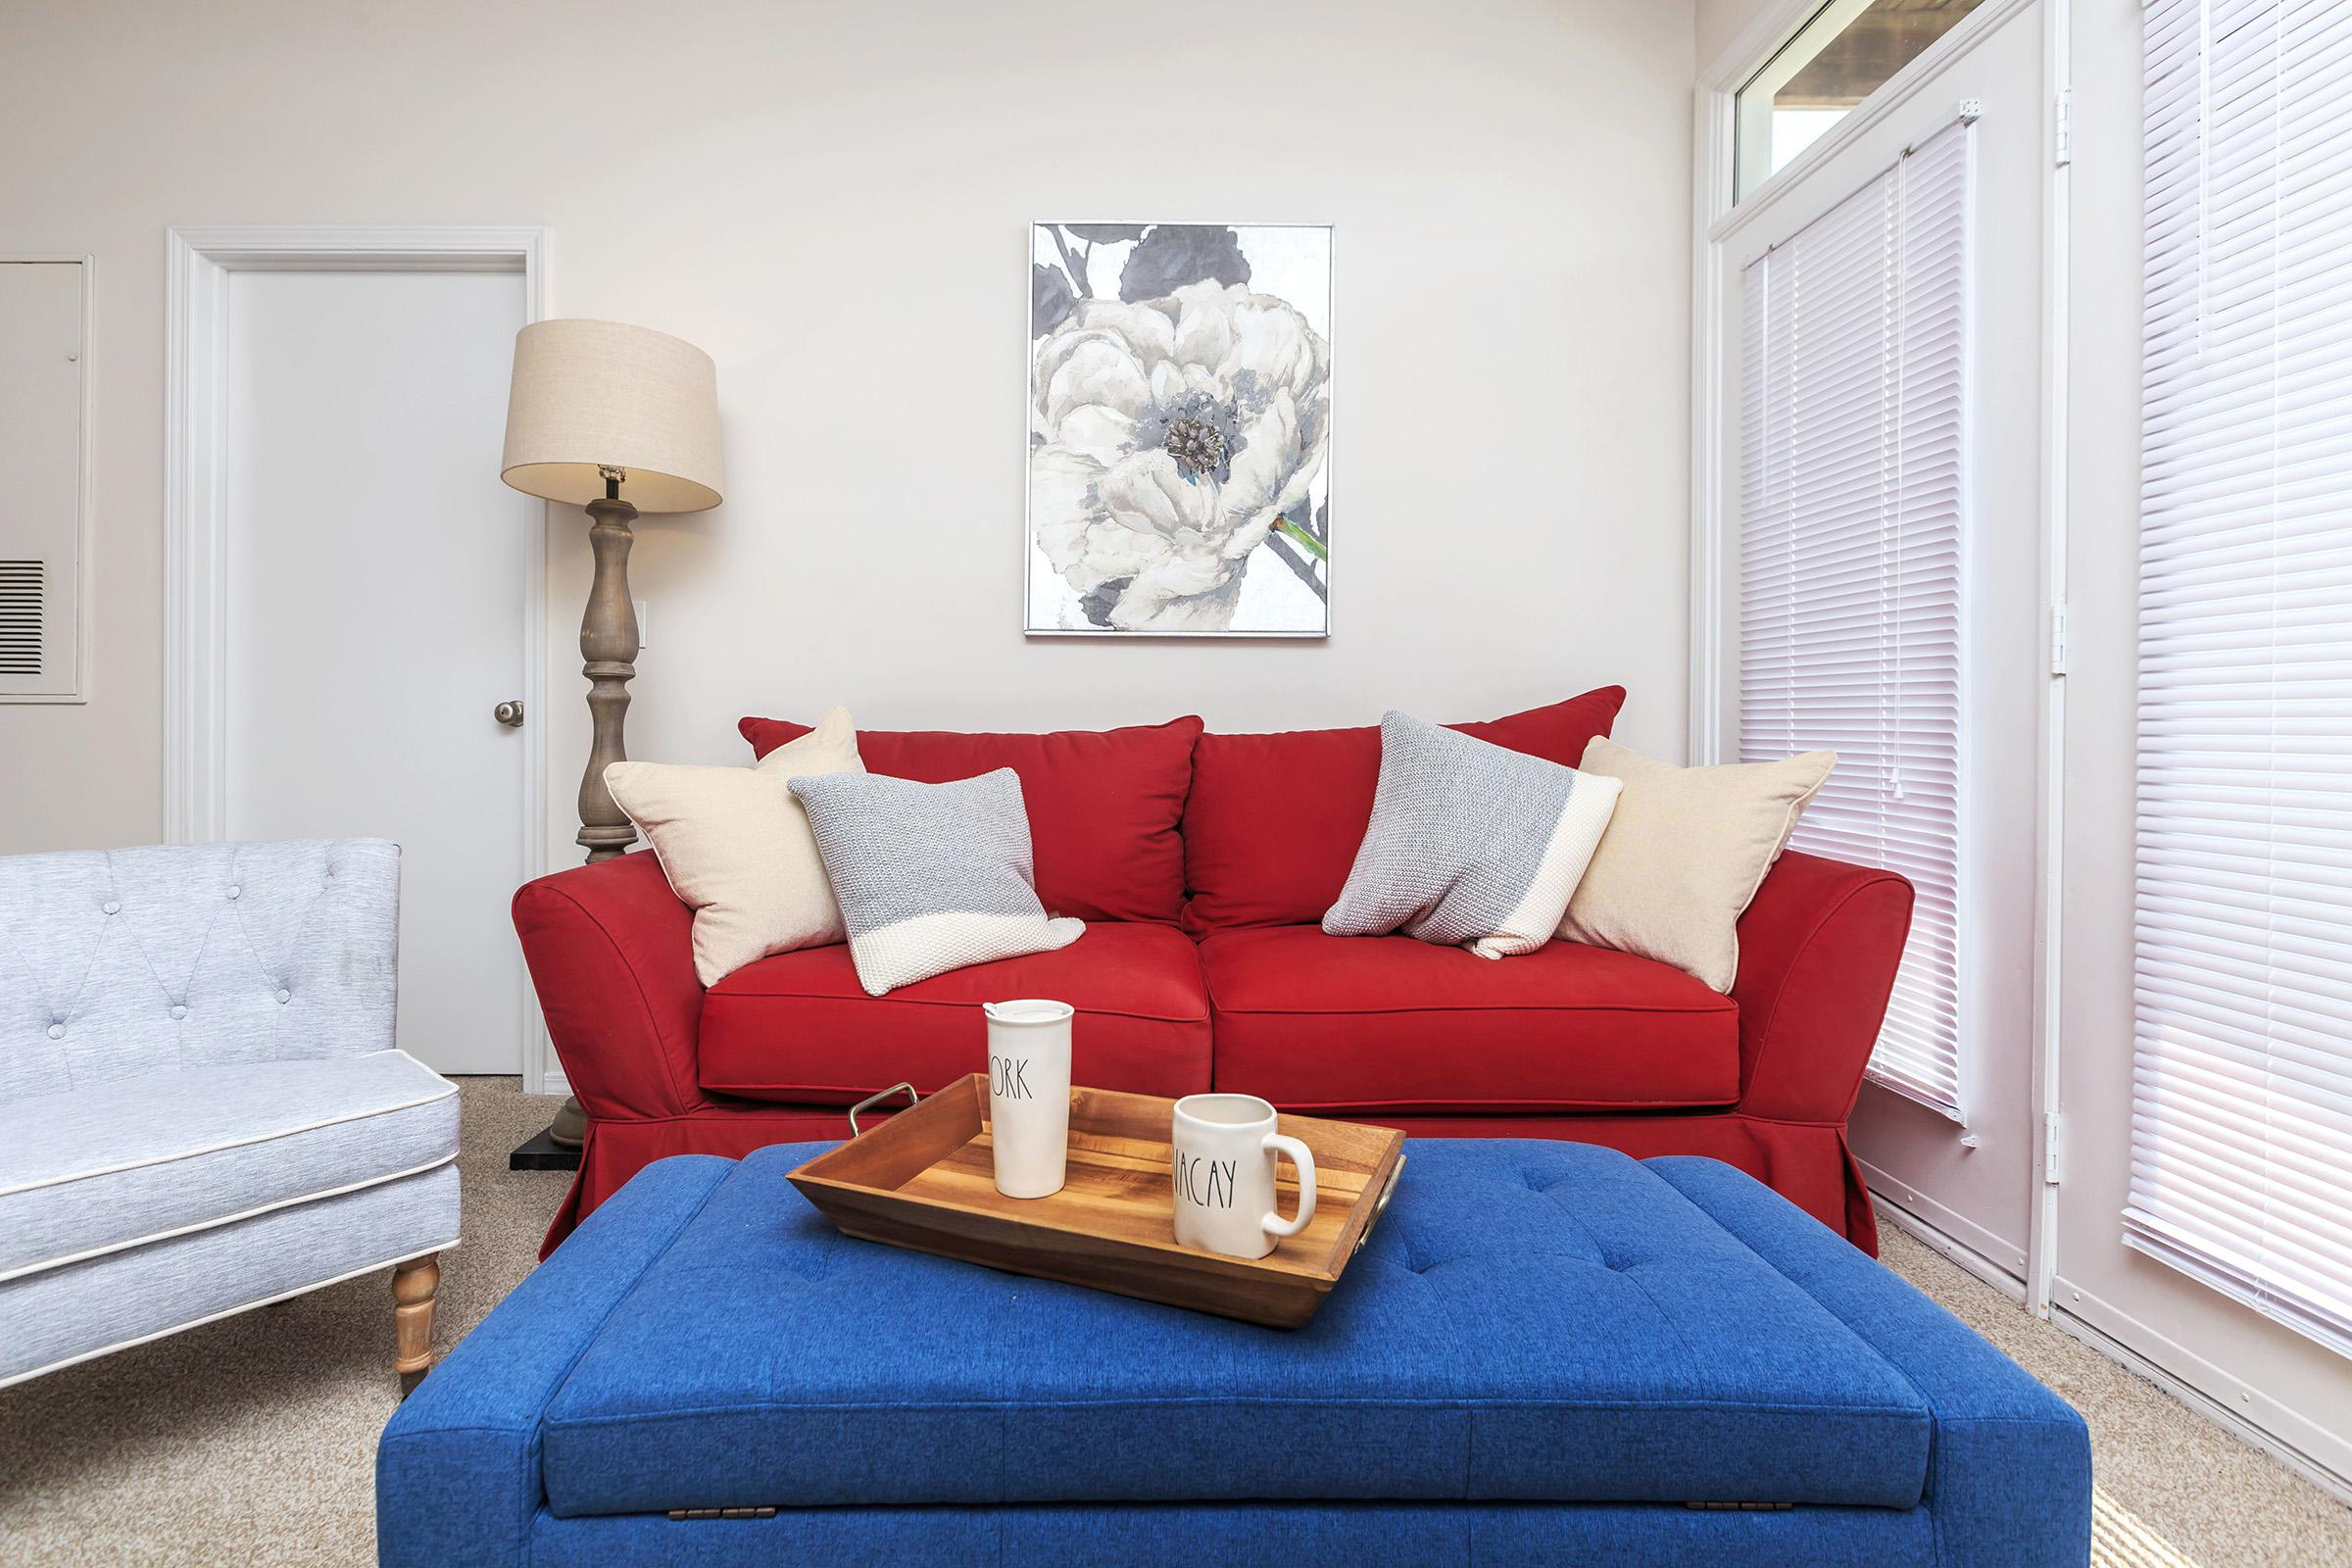 a living area with red and blue furniture